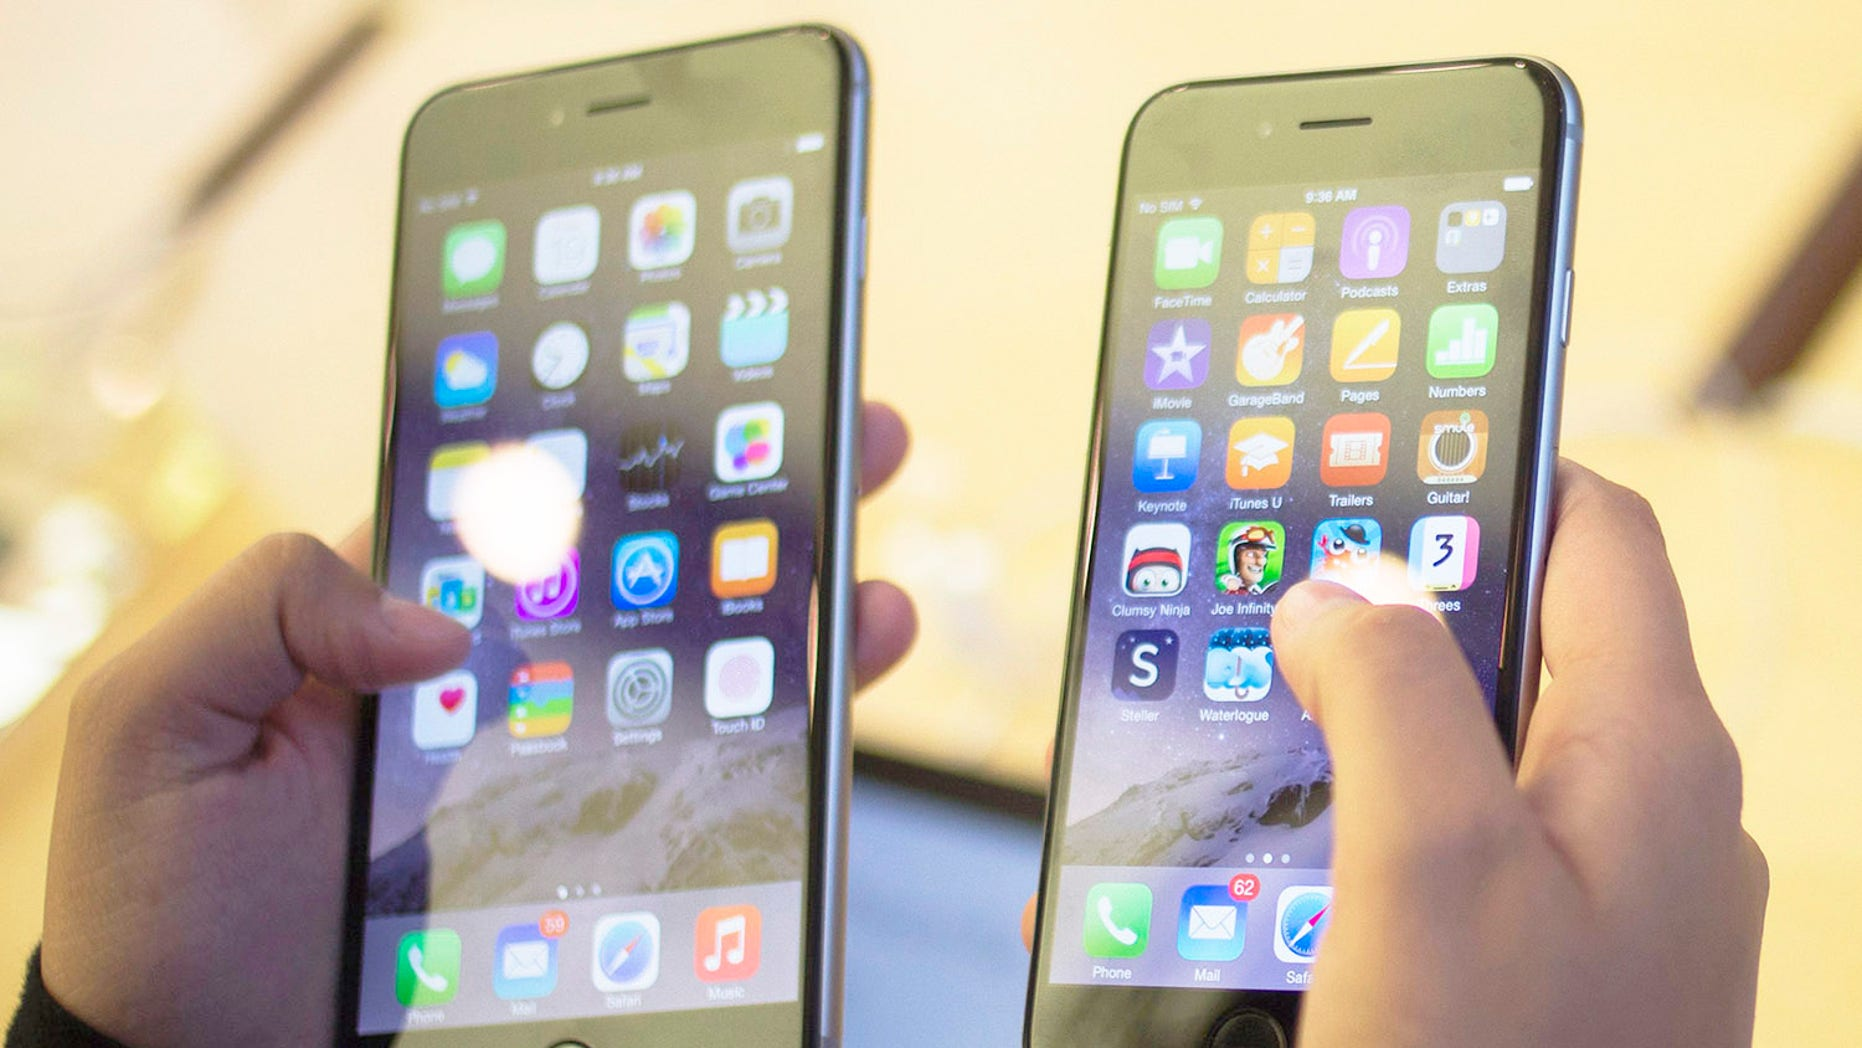 Apple's newest iPhone 6 is not acceptable currency in Buddhist temples.